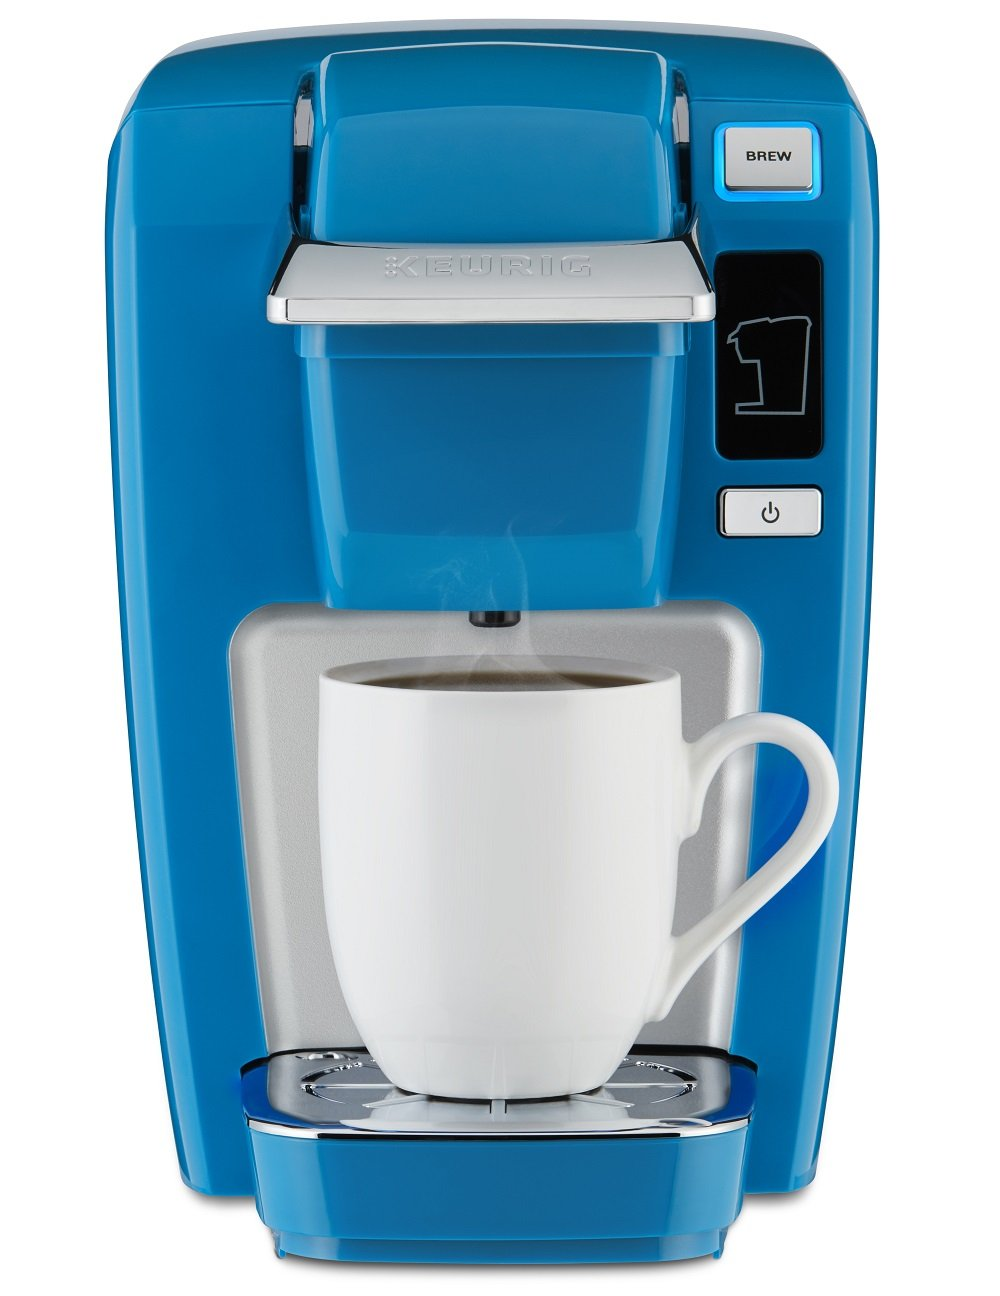 Portable Compact Coffee Maker : Keurig K15 Single Serve Compact K Cup Pod Coffee Maker True Blue 619512657956 eBay